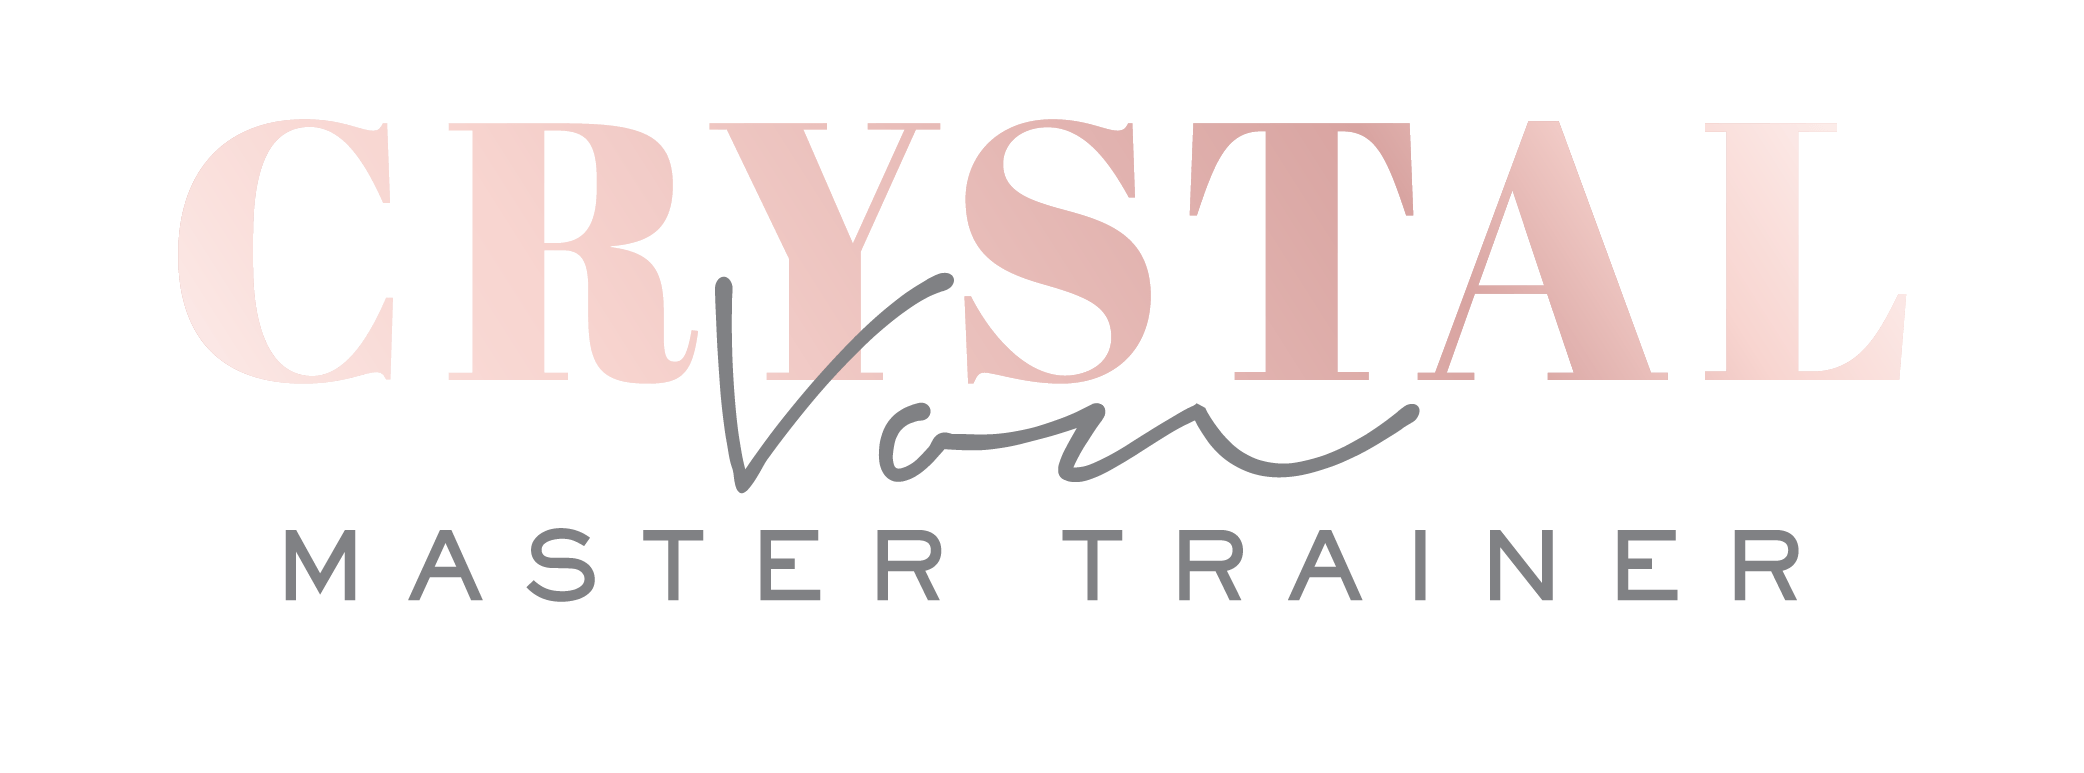 Crystal Master Trainer